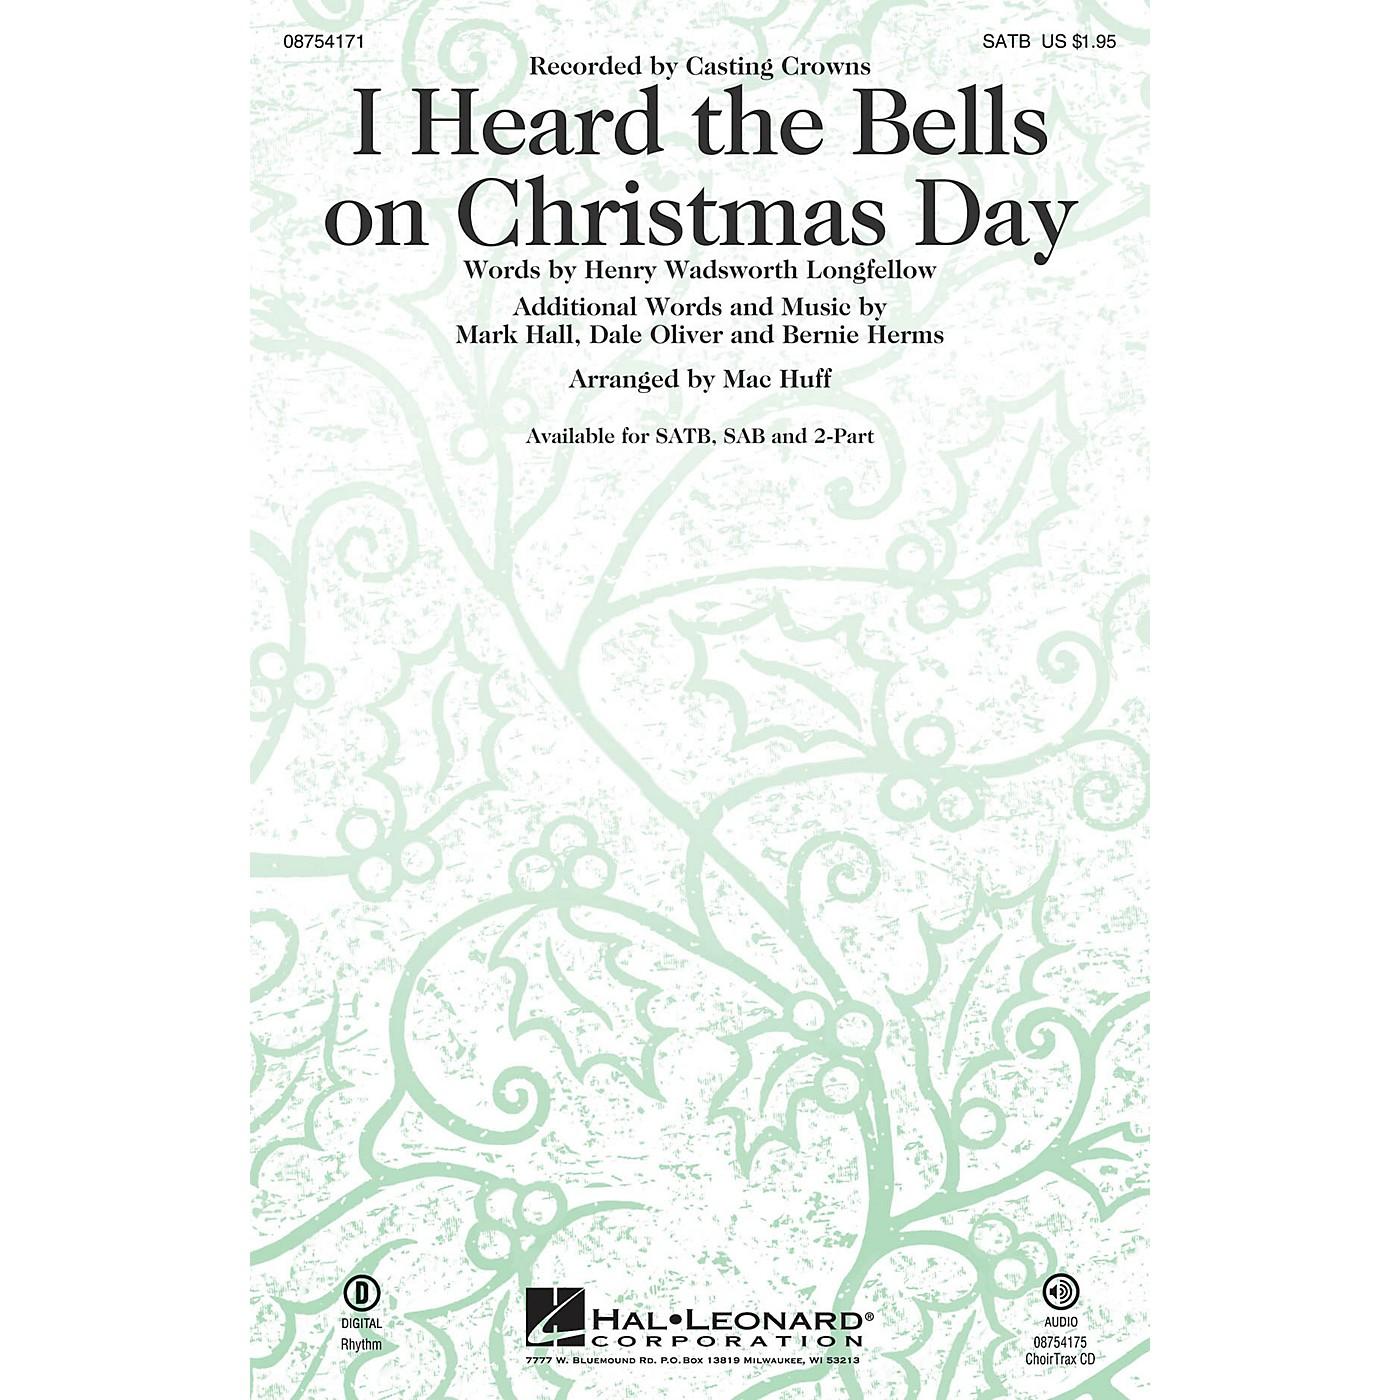 Hal Leonard I Heard the Bells On Christmas Day 2-Part by Casting Crowns Arranged by Mac Huff thumbnail